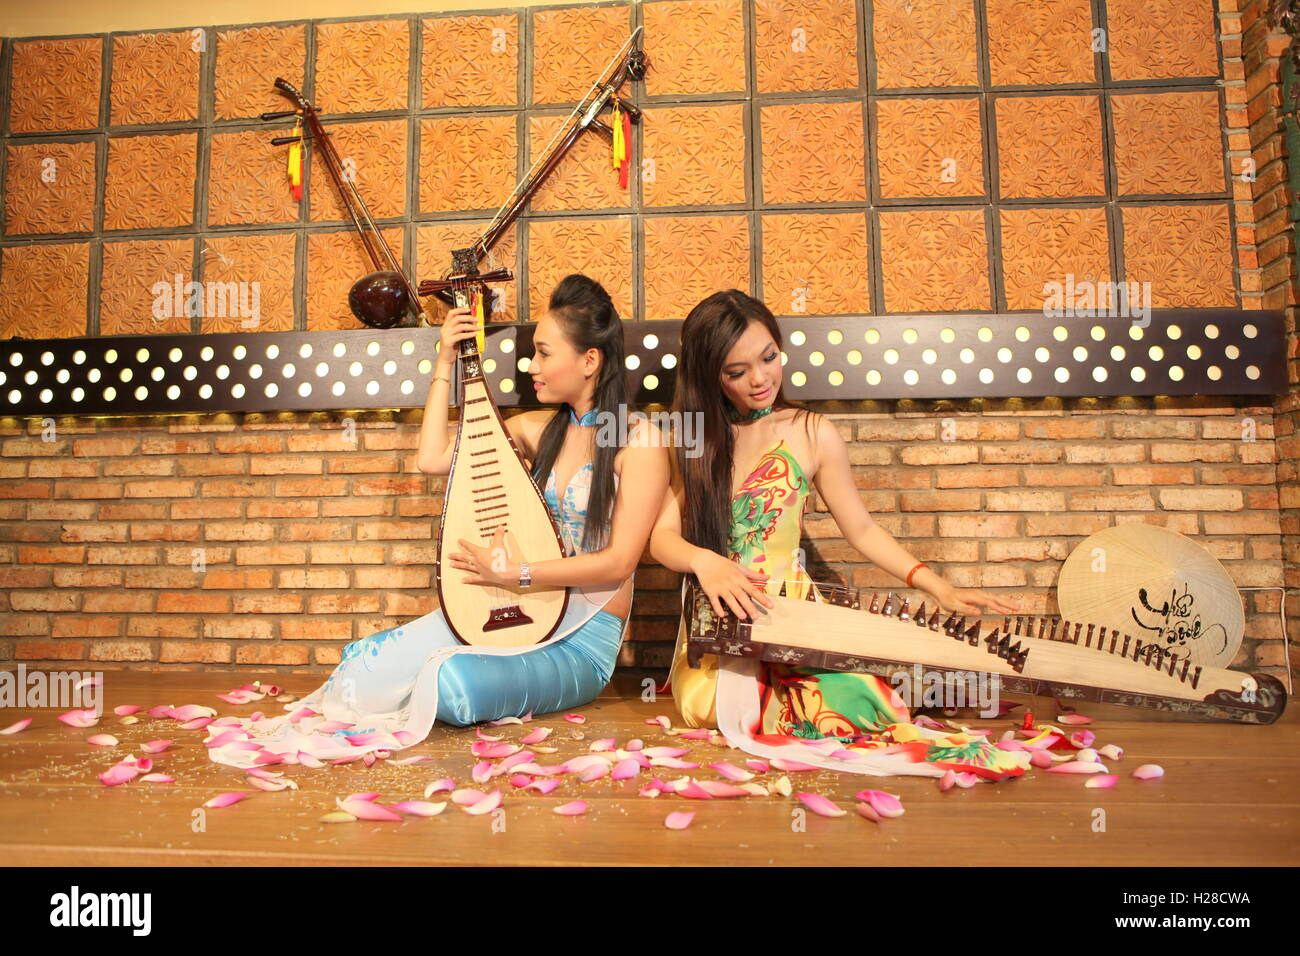 Vinh Long, Vietnam - November 4, 2015: Two young girls are playing Vietnamese traditional instruments in a restaurant Stock Photo